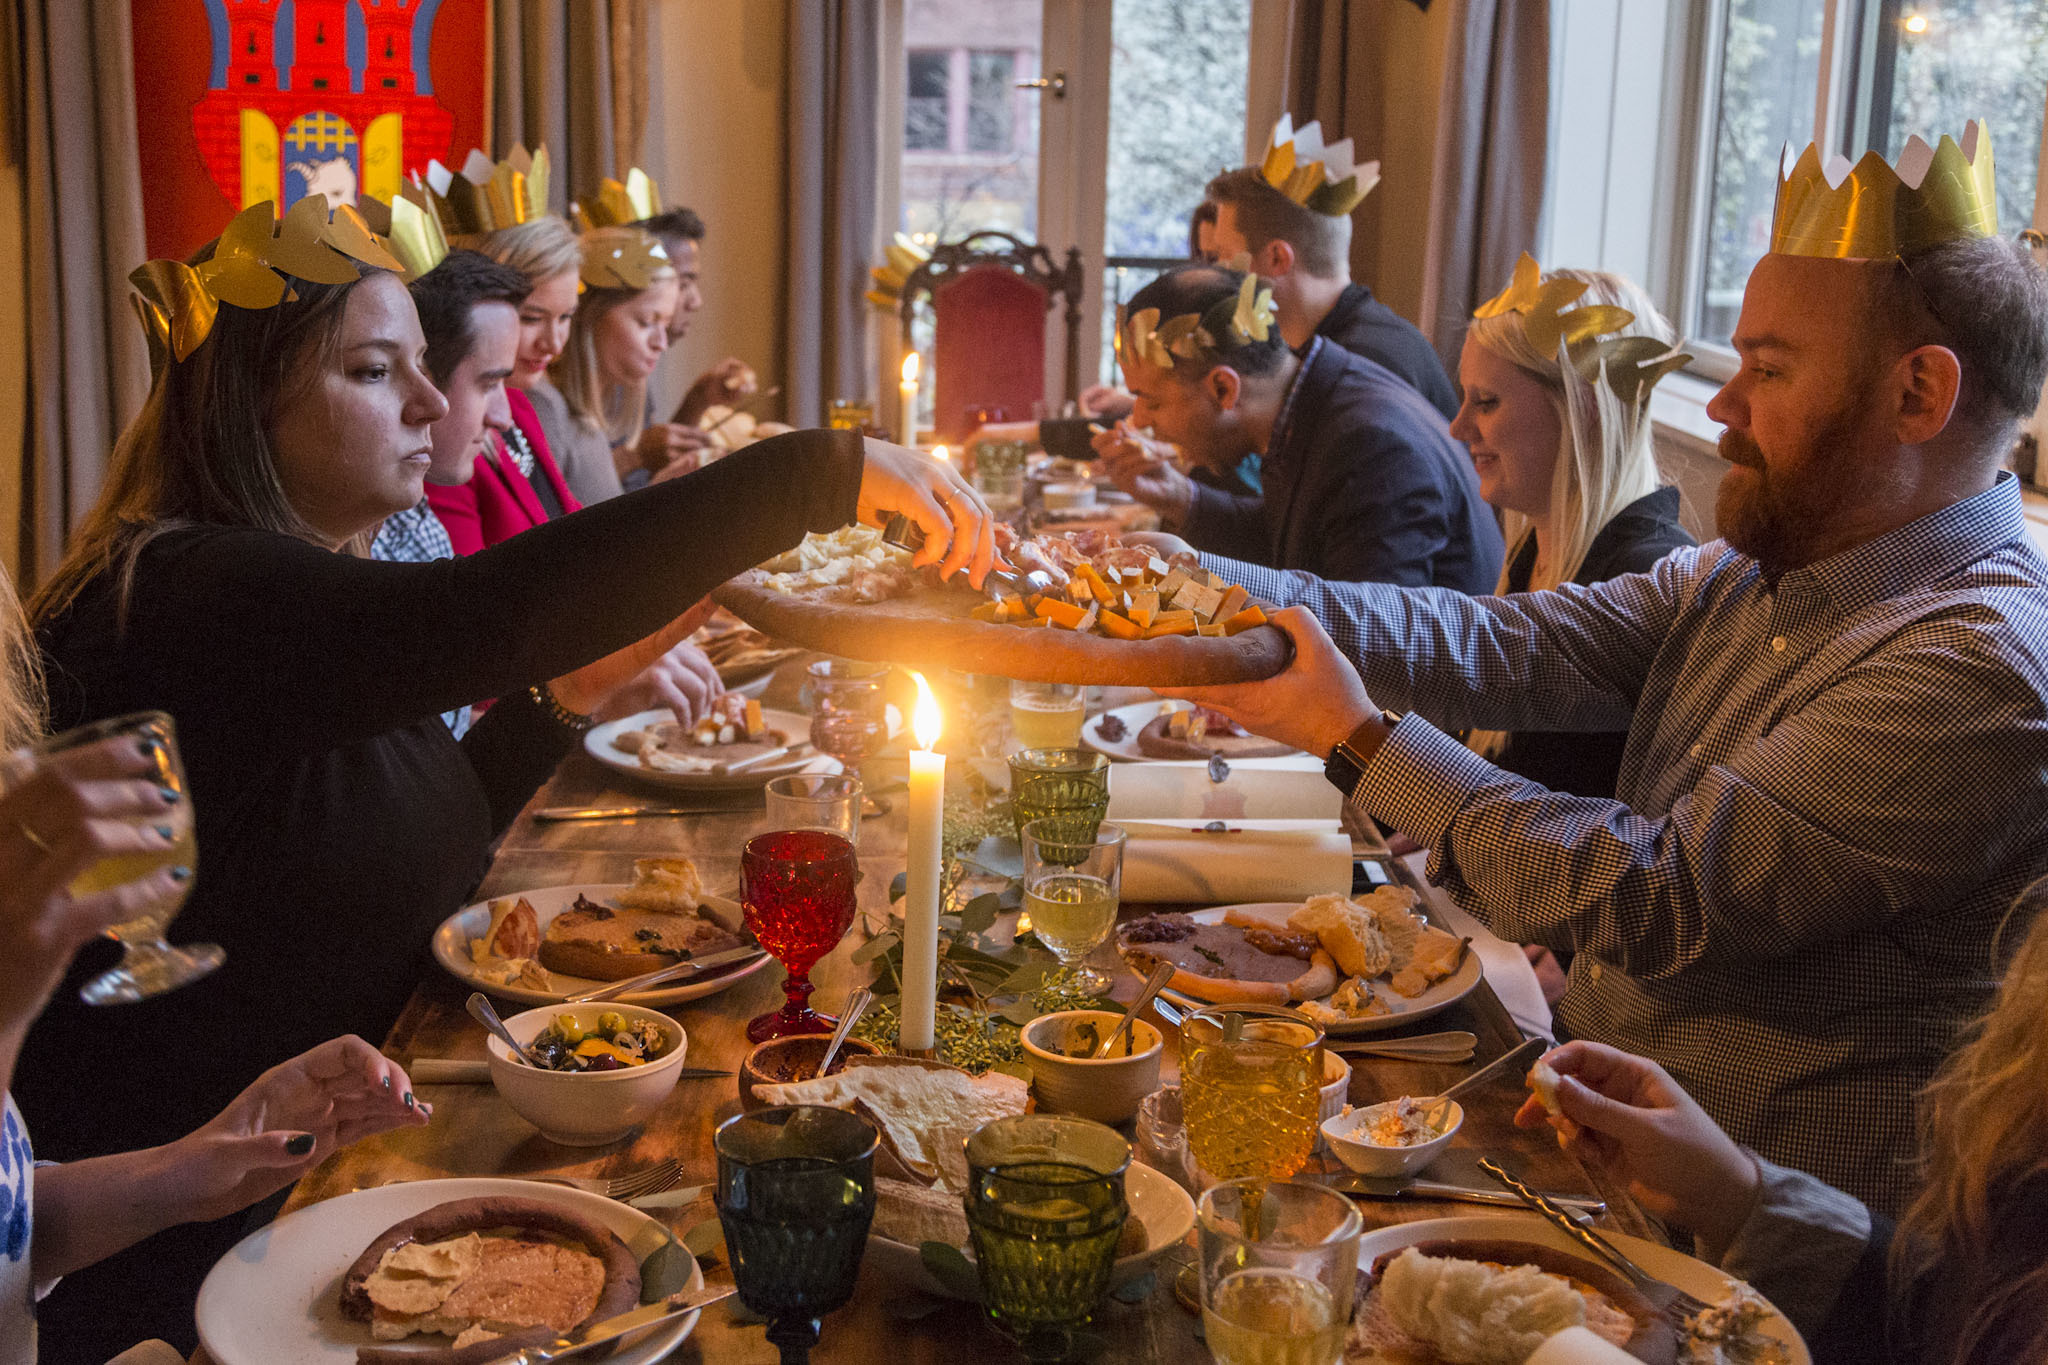 Stephanie Izard hosted a Medieval dinner party last night, and we have the pictures to prove it